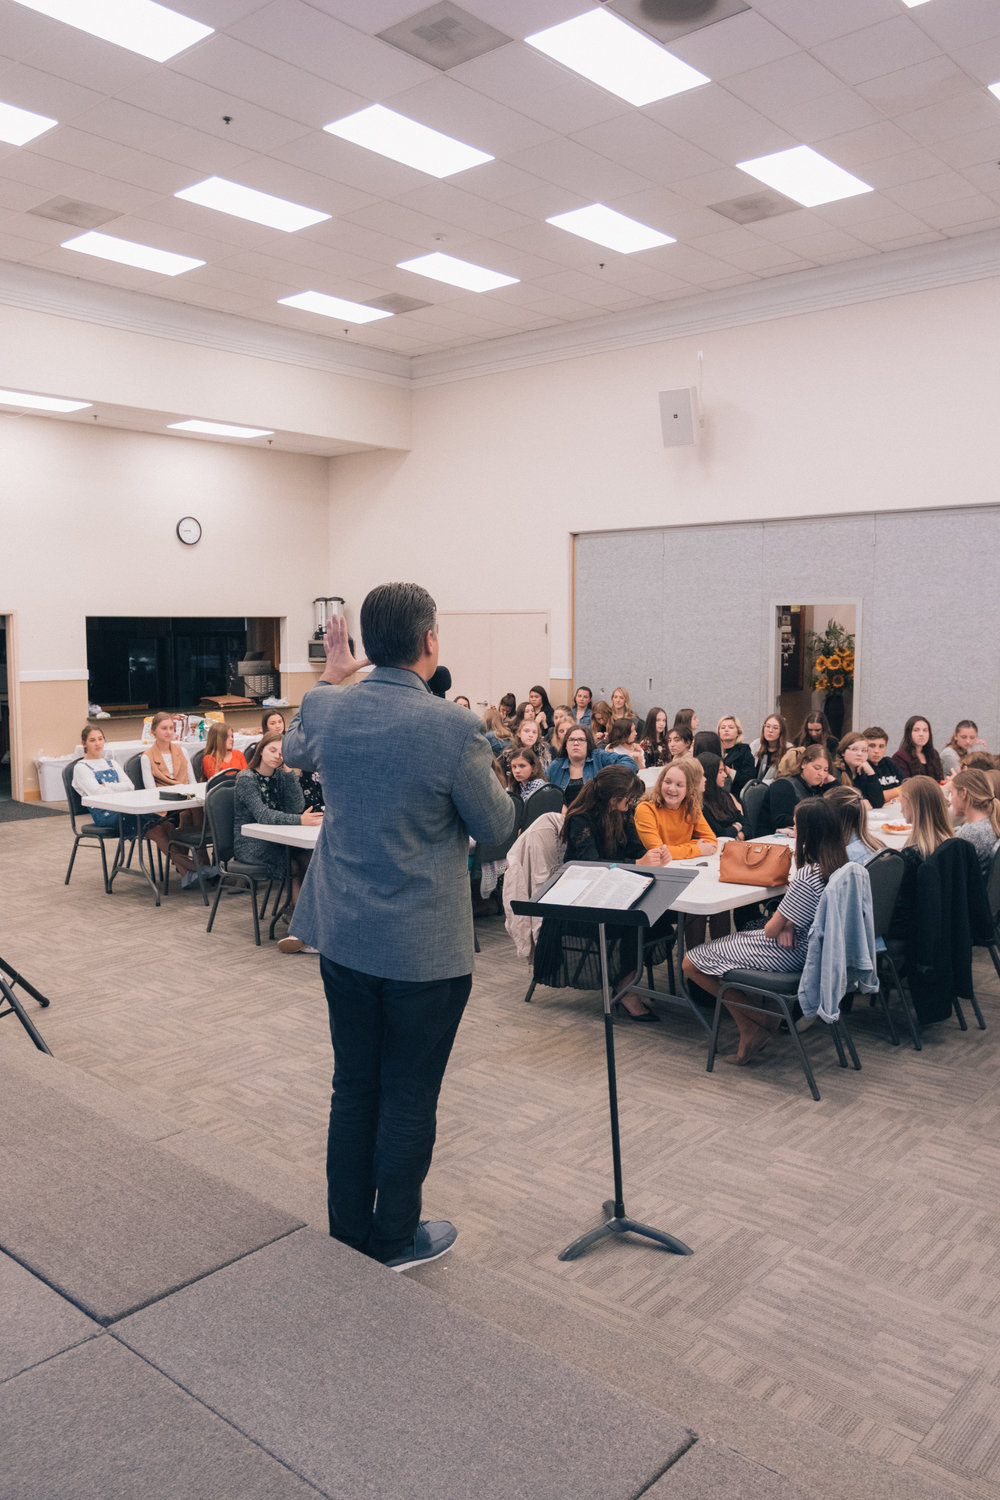 Faith. GRowth. Serve. - Teens is dedicated to the strengthening of faith in Christ, encouraging spiritual growth, and preparing young minds for serving God.